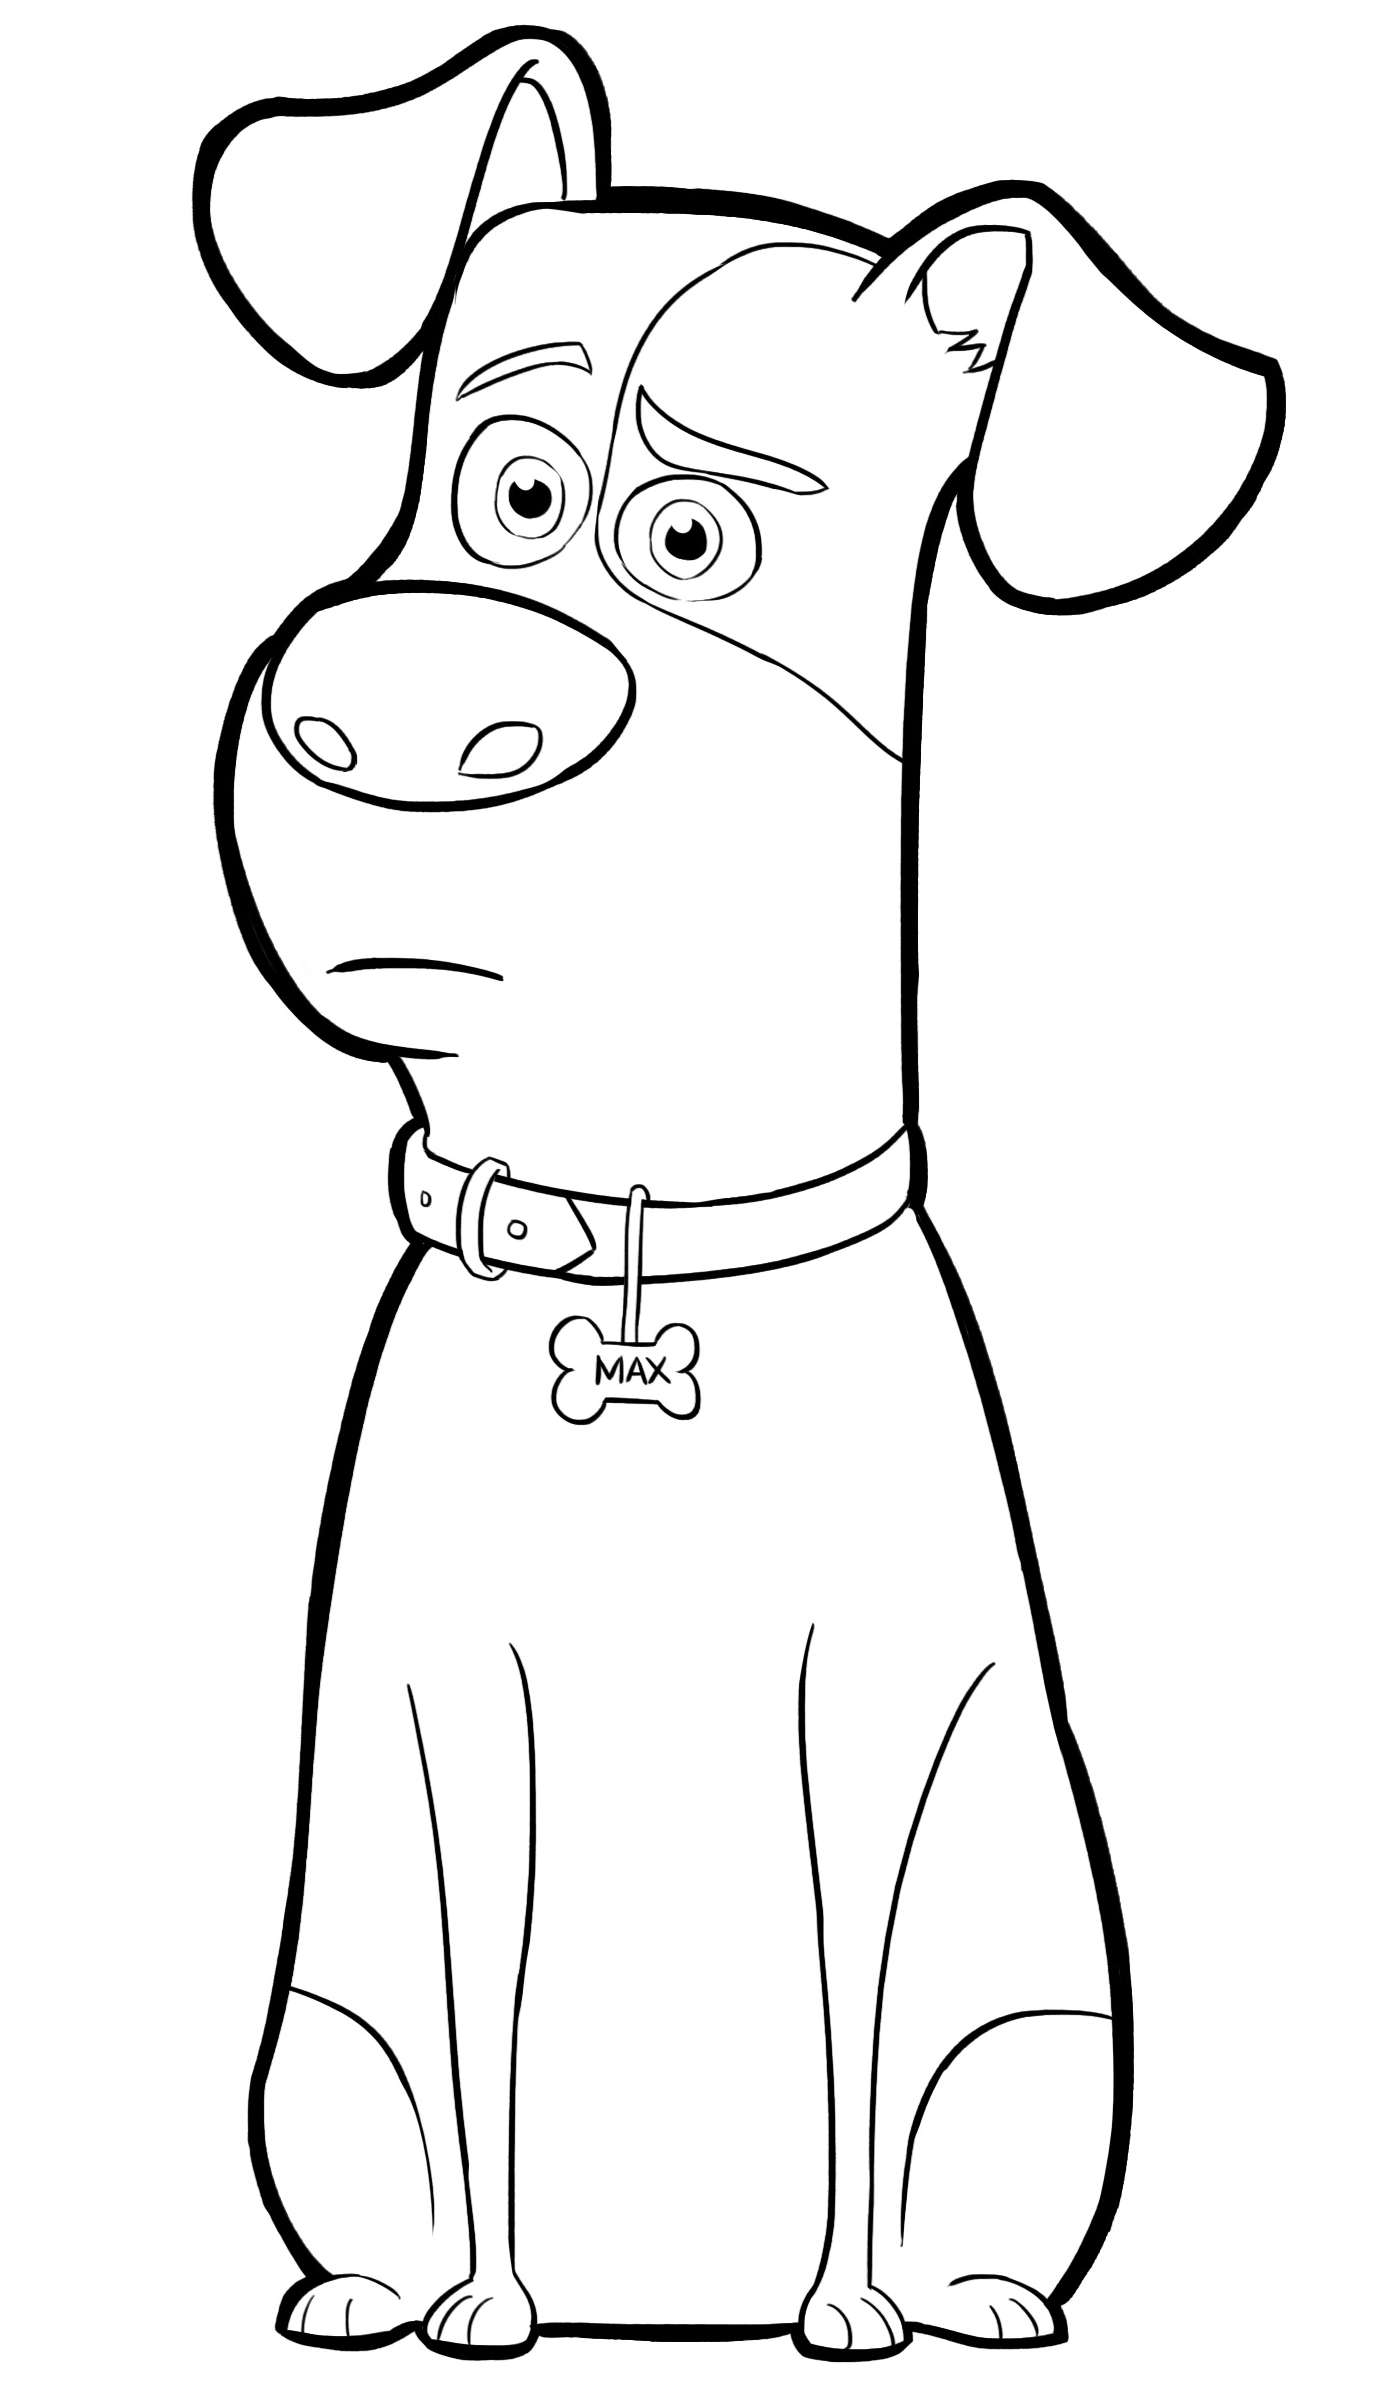 coloring picture color for kids march coloring pages best coloring pages for kids color picture kids for coloring